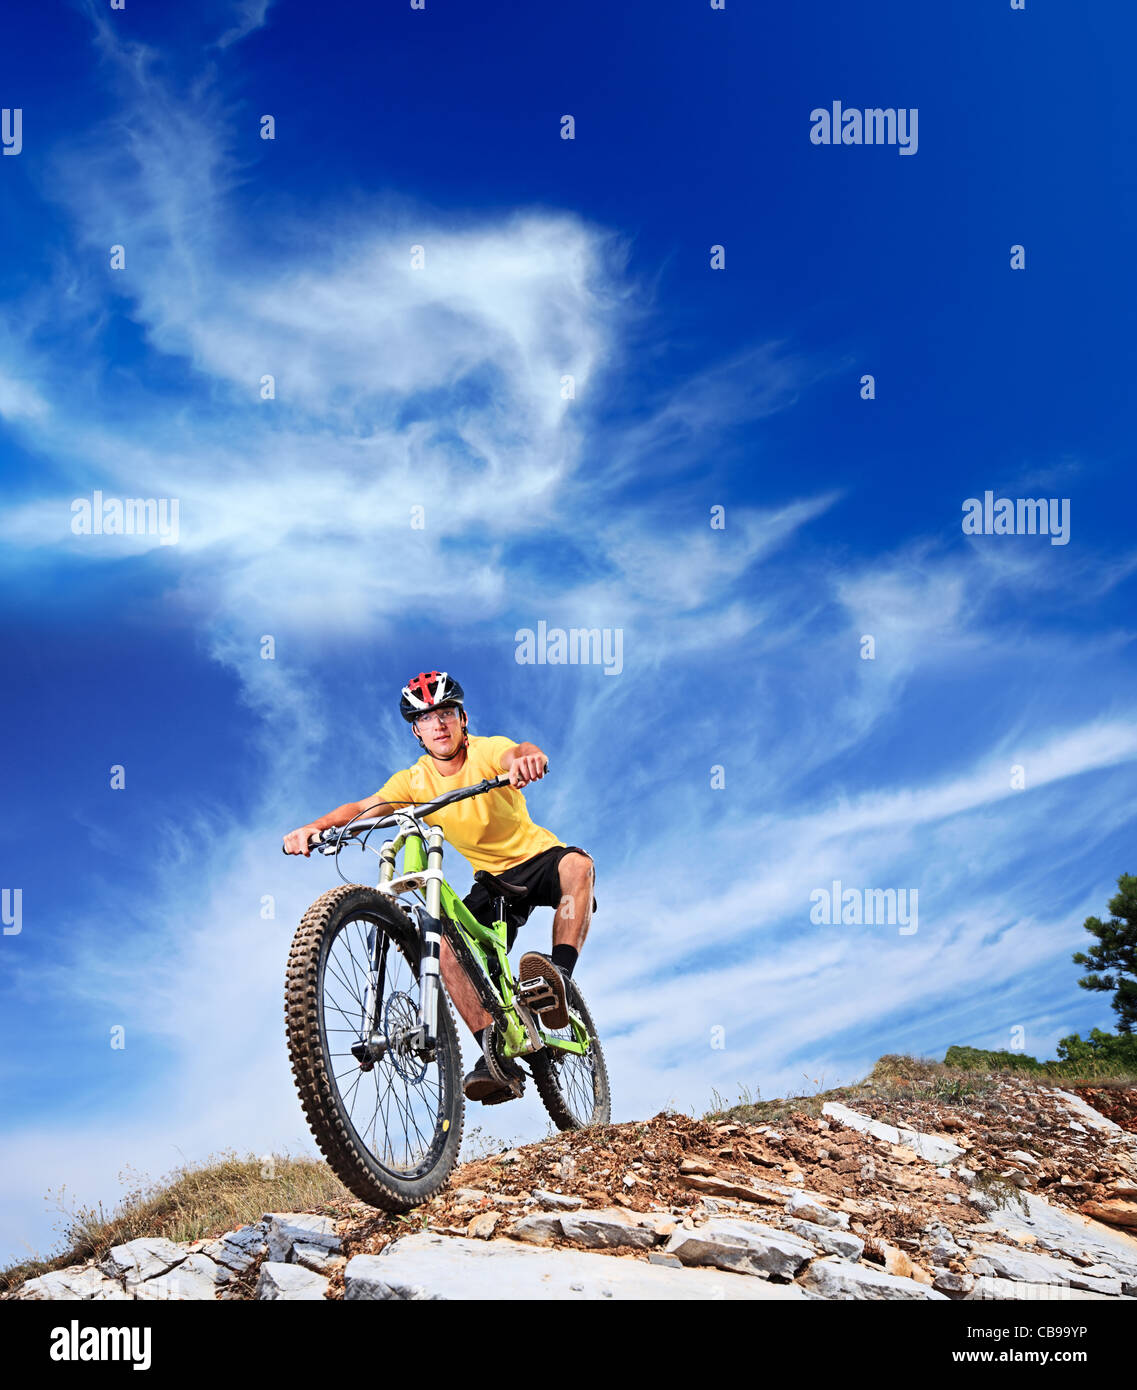 Person riding a mountain bike on a slope - Stock Image